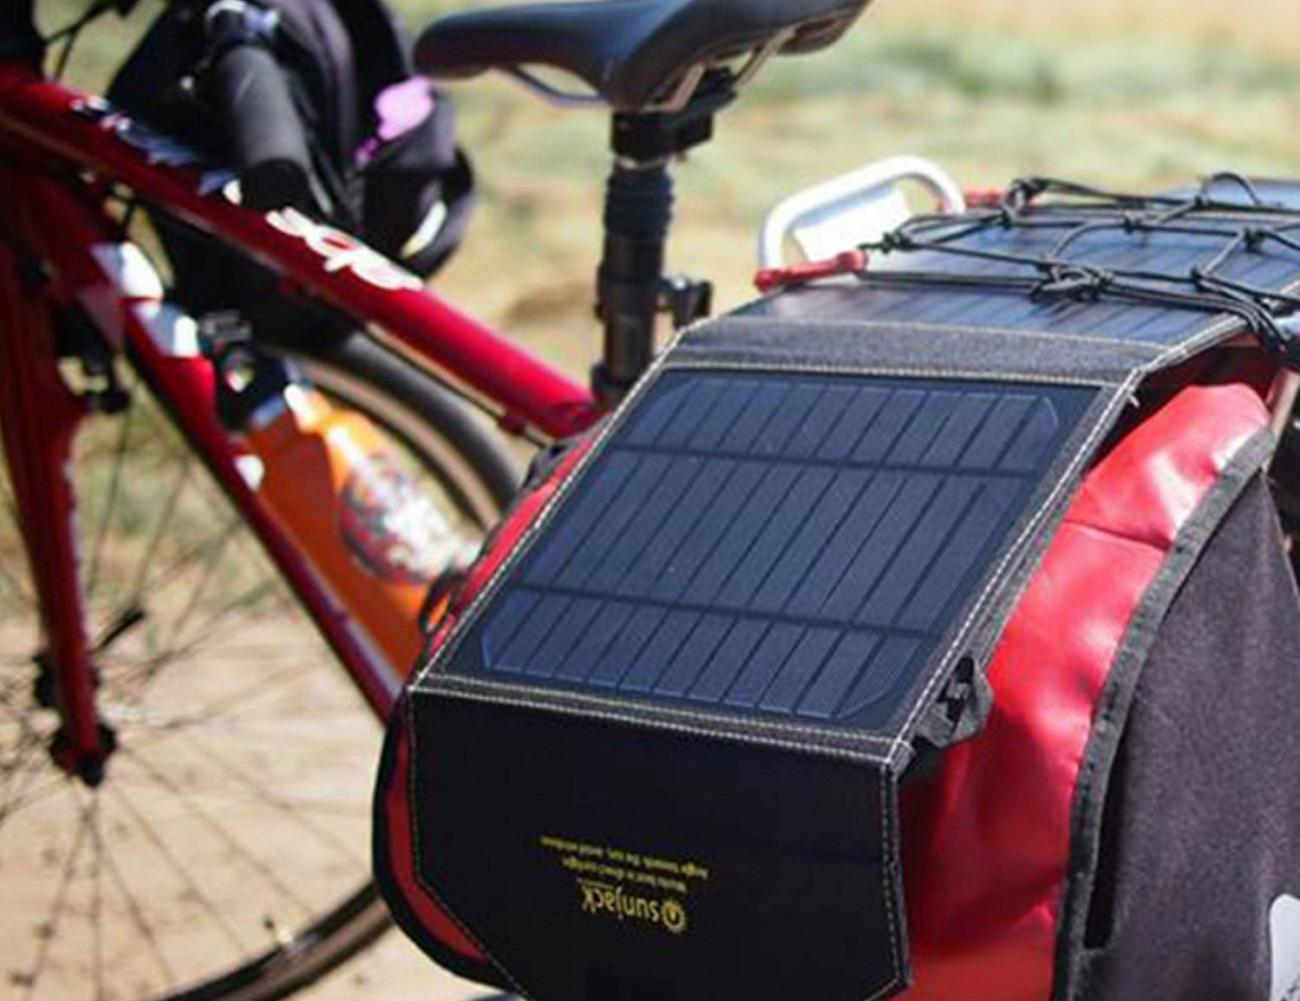 The SunJack Solar Charger